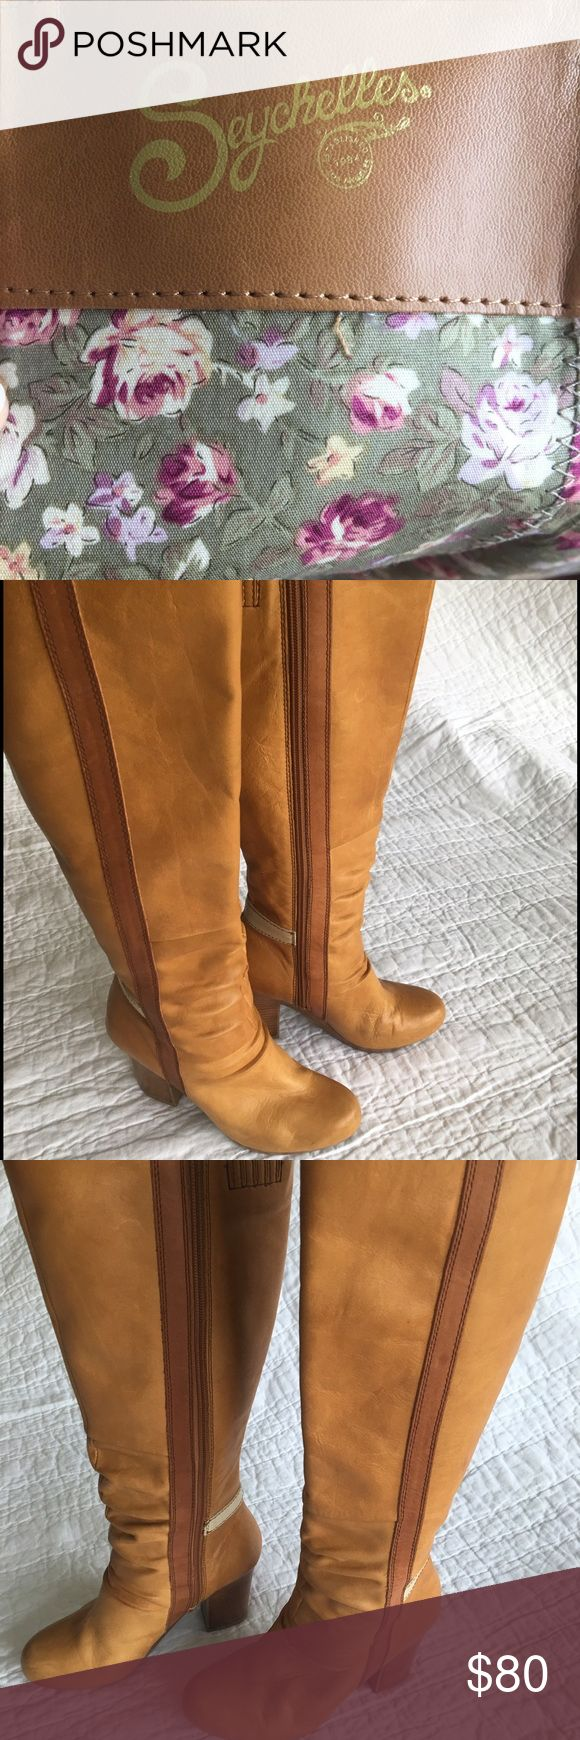 Seychelles boots Size 7 leather Seychelles boots Seychelles Shoes Heeled Boots